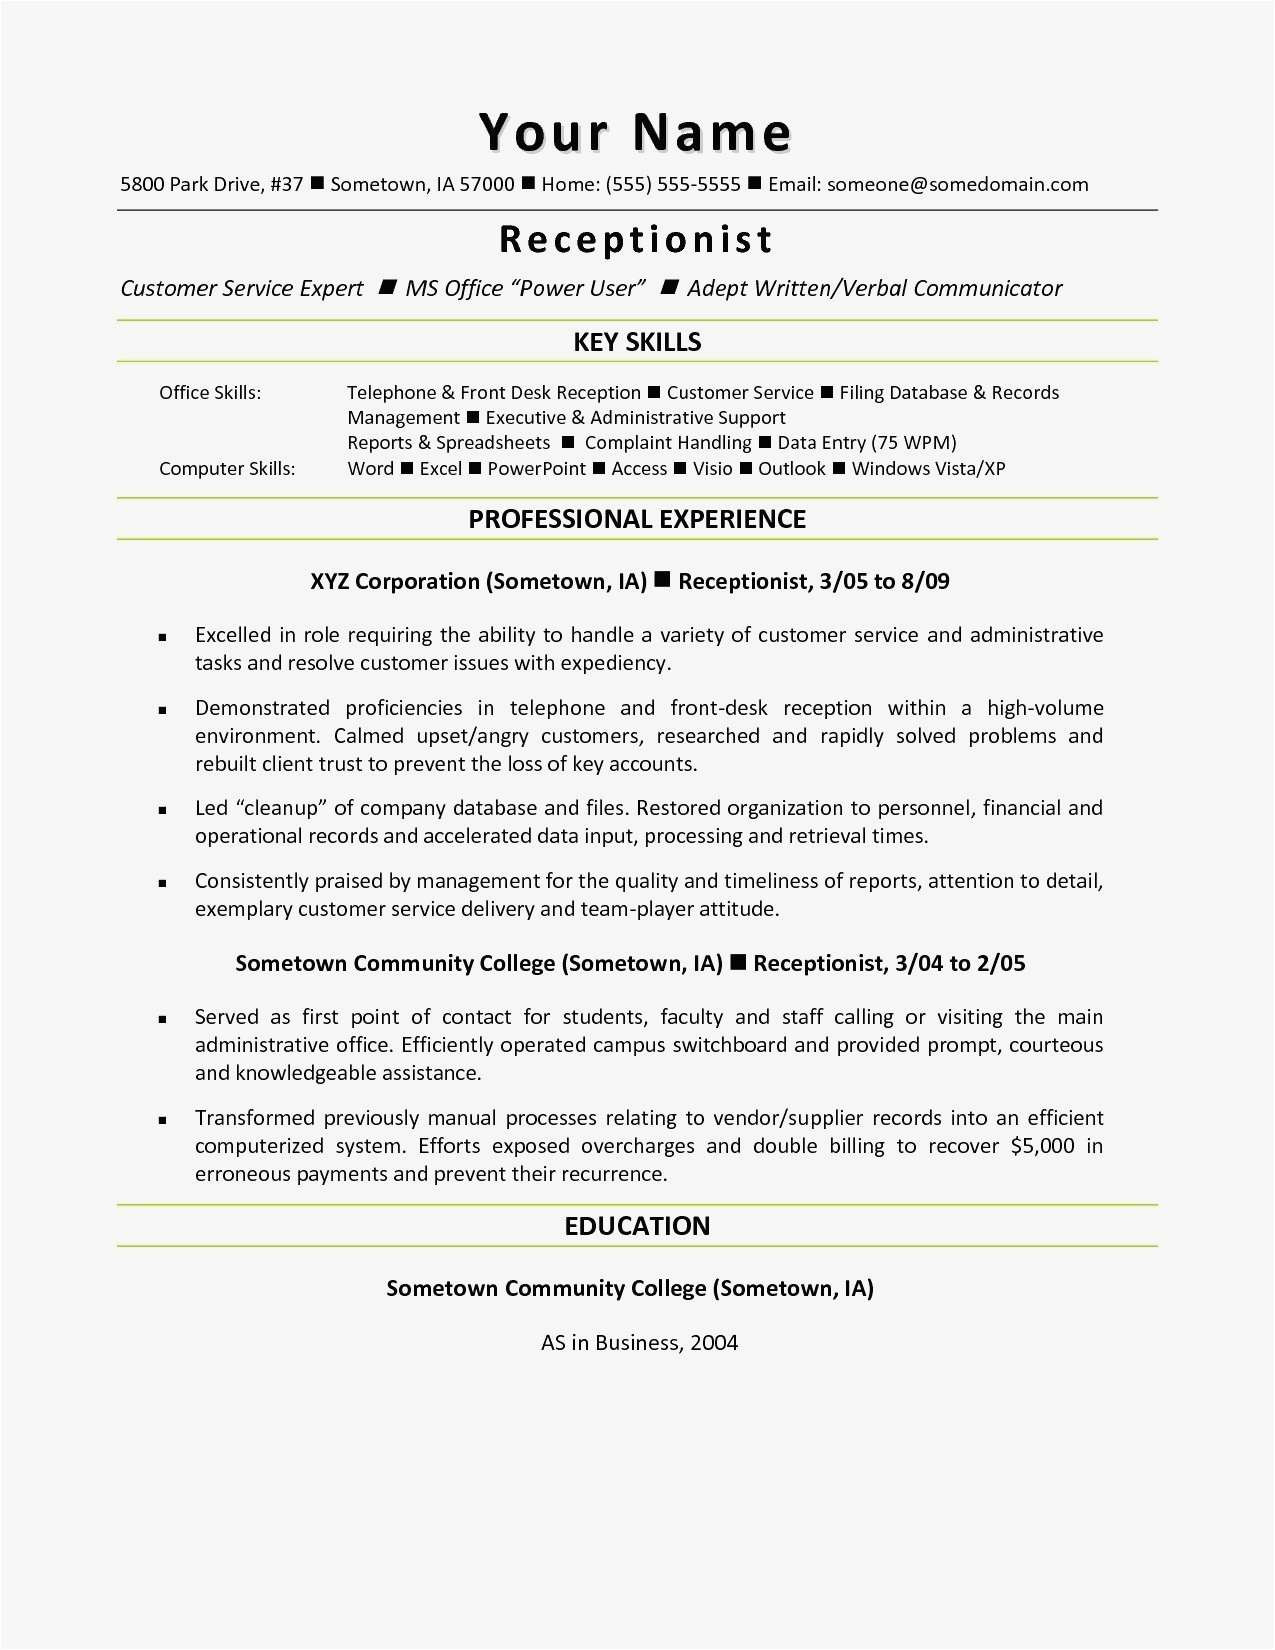 Administrative assistant Resume Template Microsoft Word - Executive assistant Resume Samples Examples Word – Free Templates